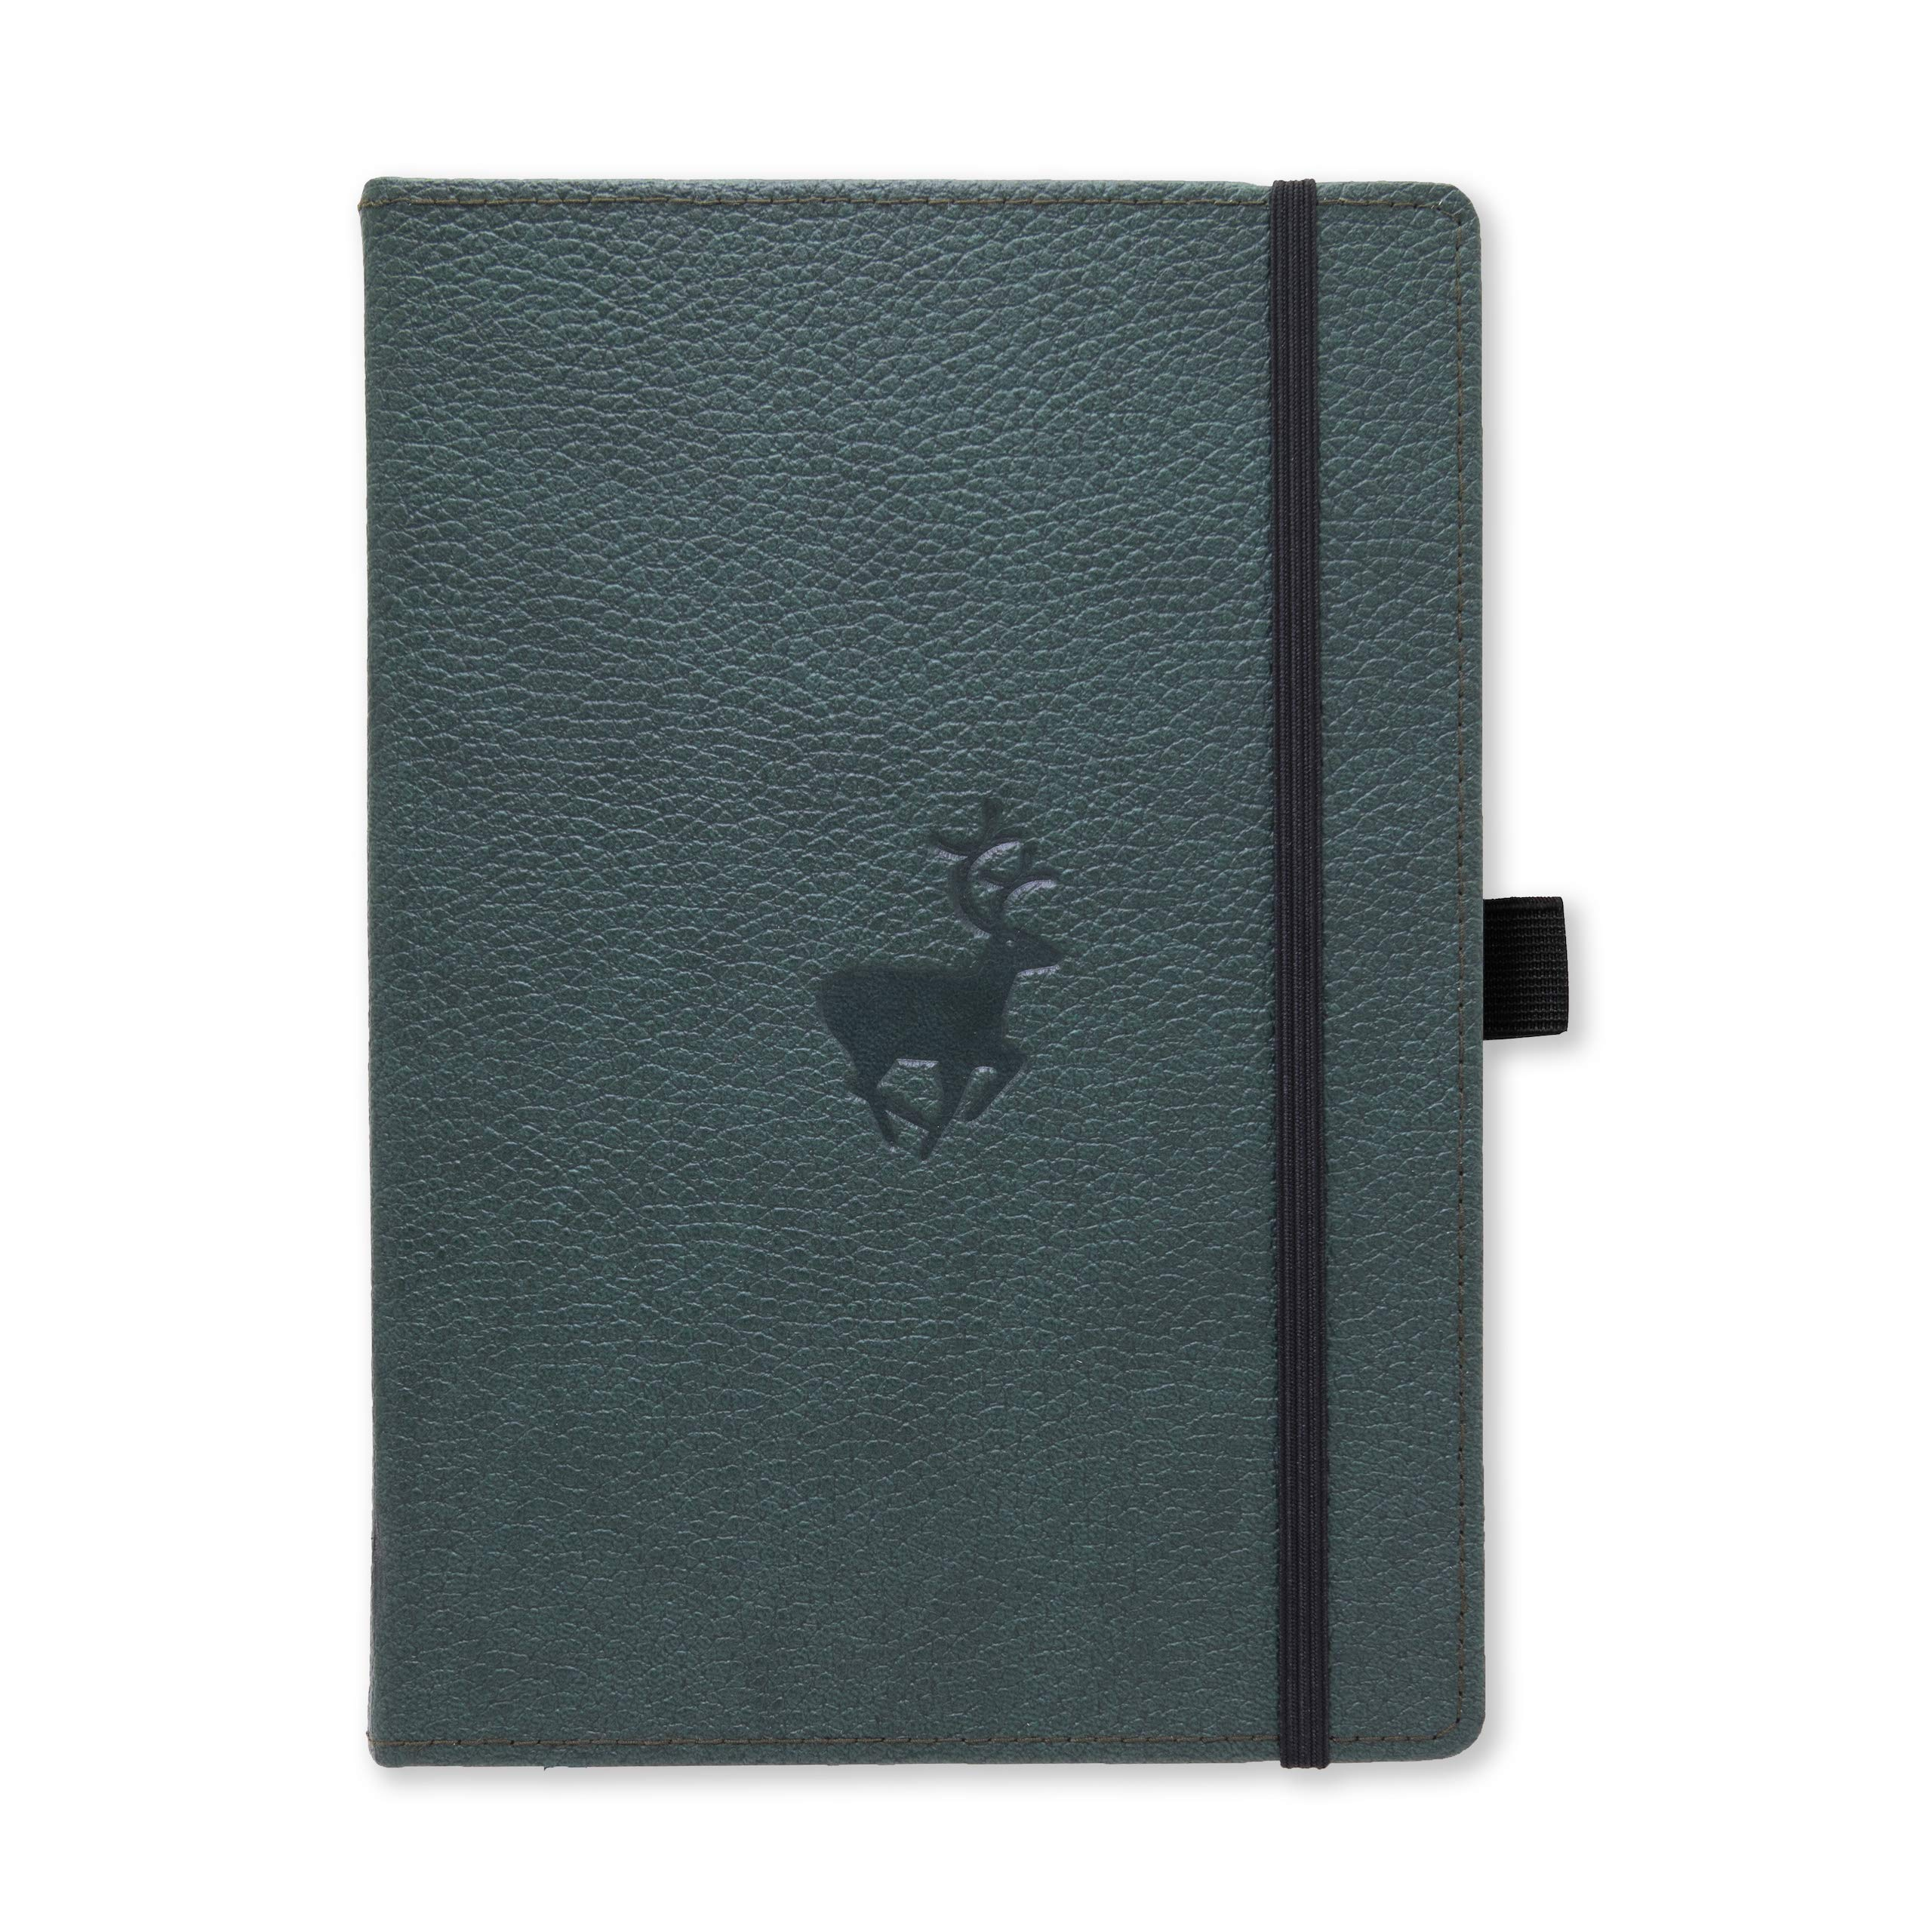 Dingbats Wildlife Medium A5+ Hardcover Notebook - PU Leather, Micro-Perforated 100gsm Cream Pages, Inner Pocket, Elastic Closure, Pen Holder, Bookmark (Plain, Green Deer)